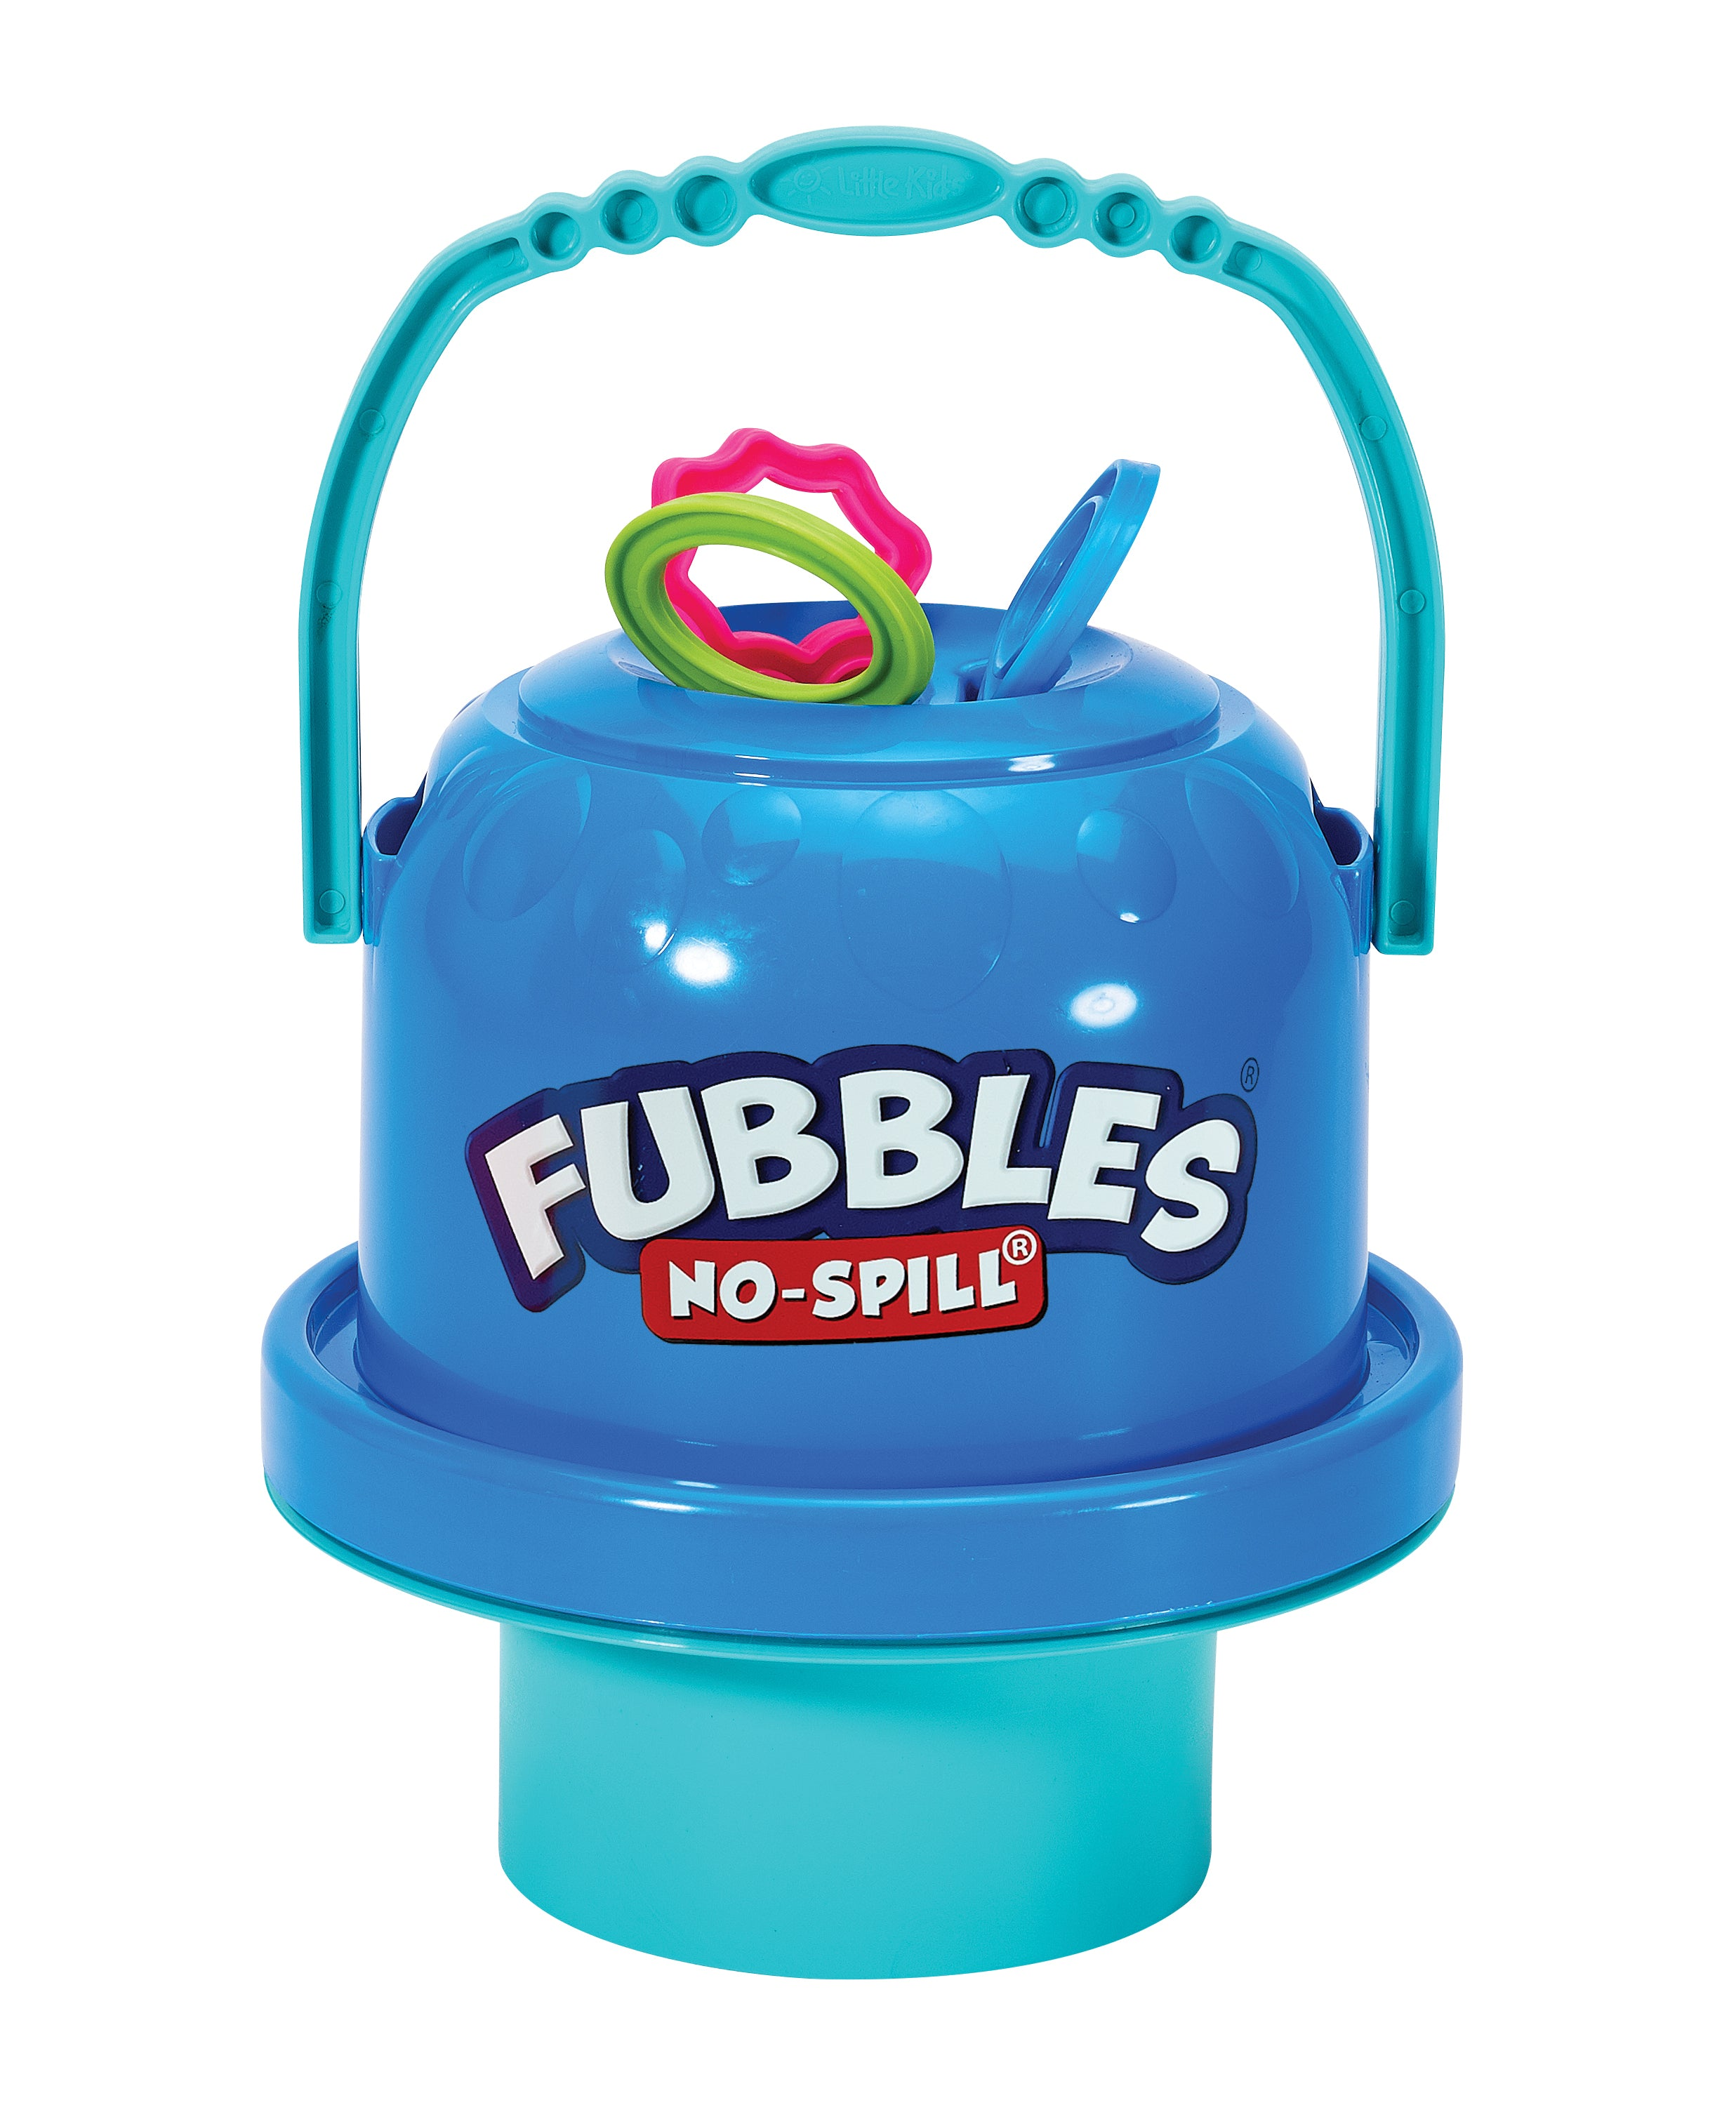 Fubbles® No-Spill Big Bubble Bucket